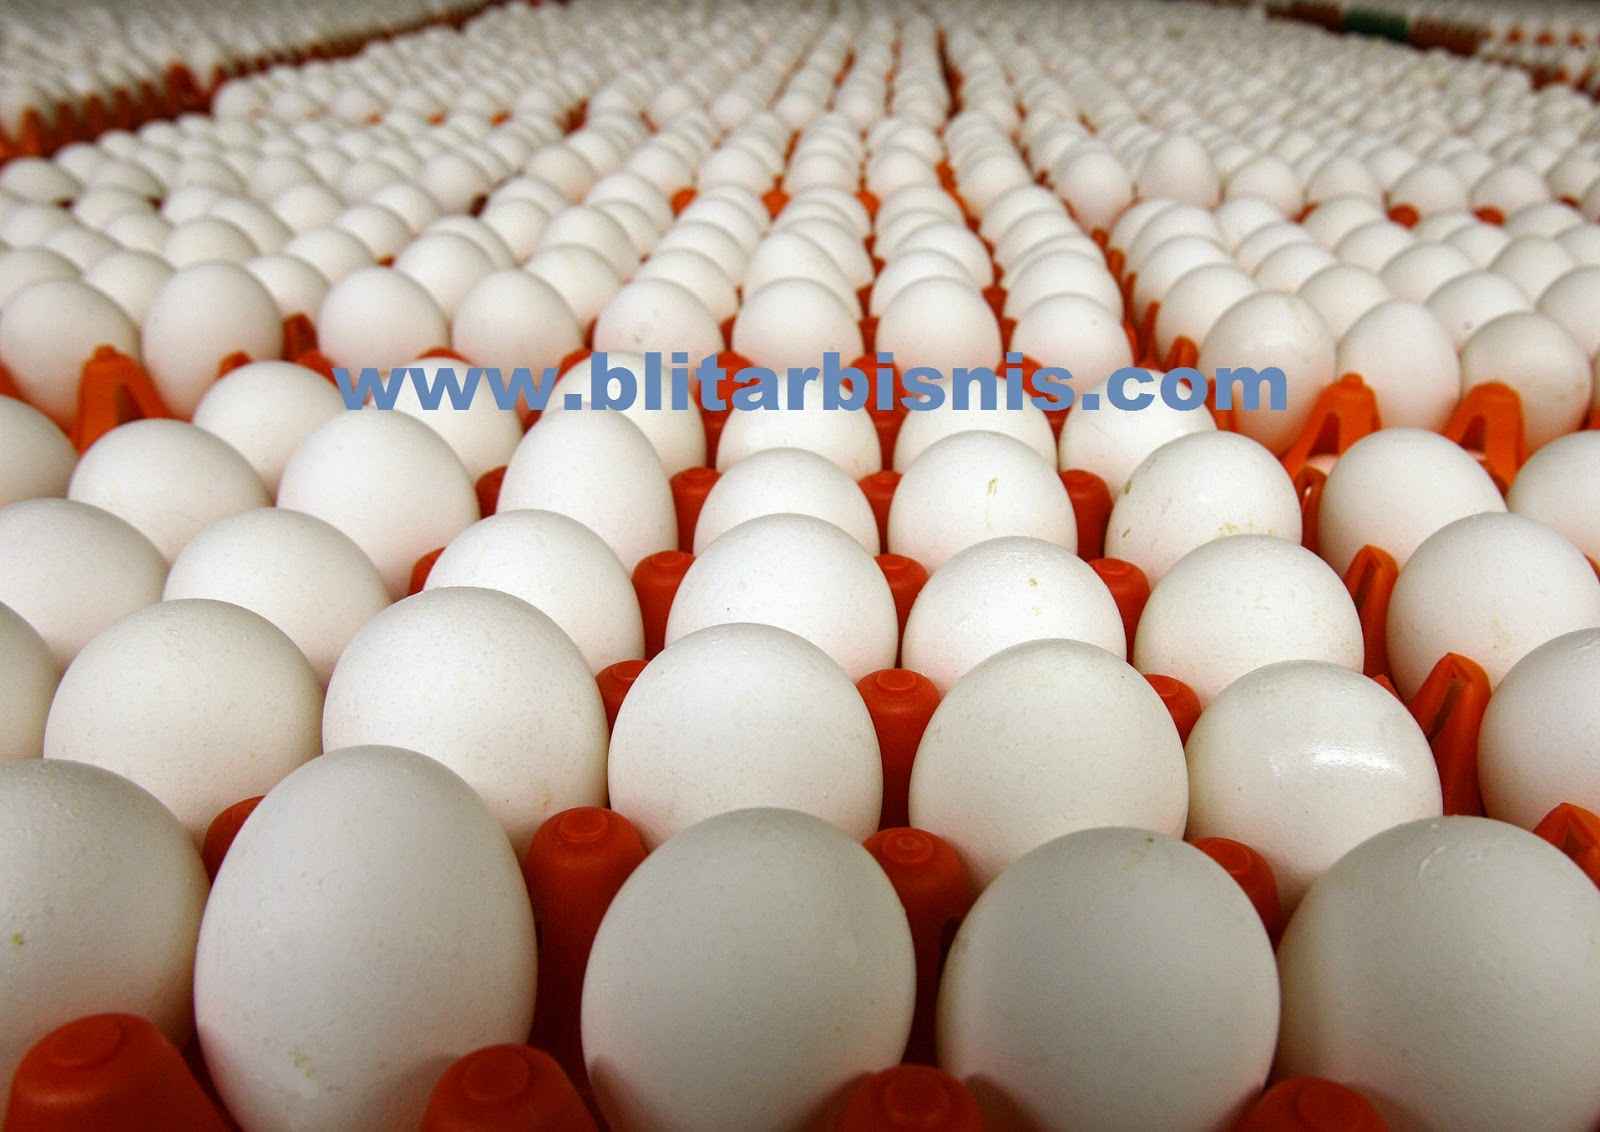 Blitar Supplier Telur